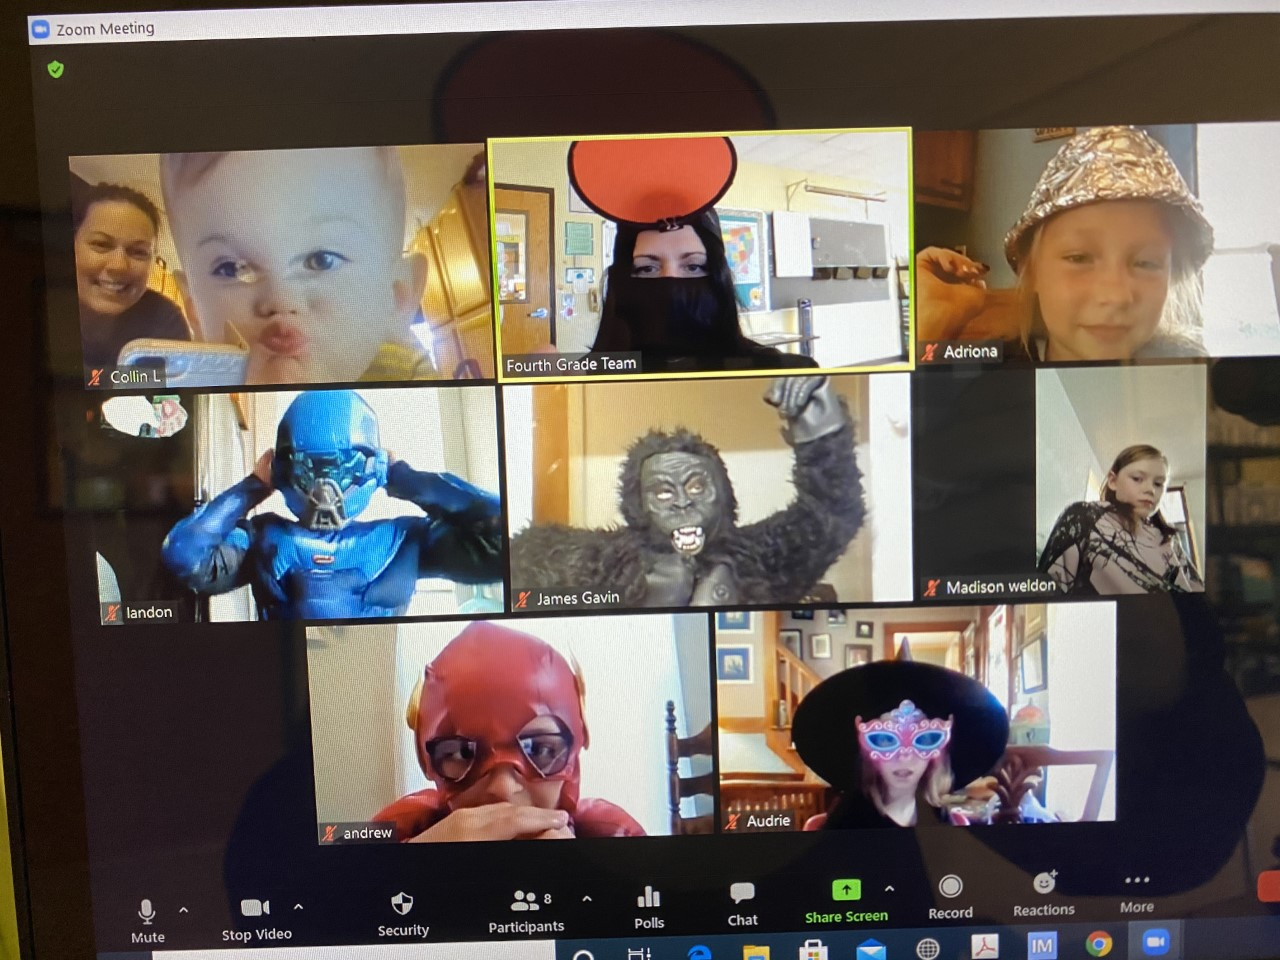 Virtual Halloween Party of 4th graders with costumes